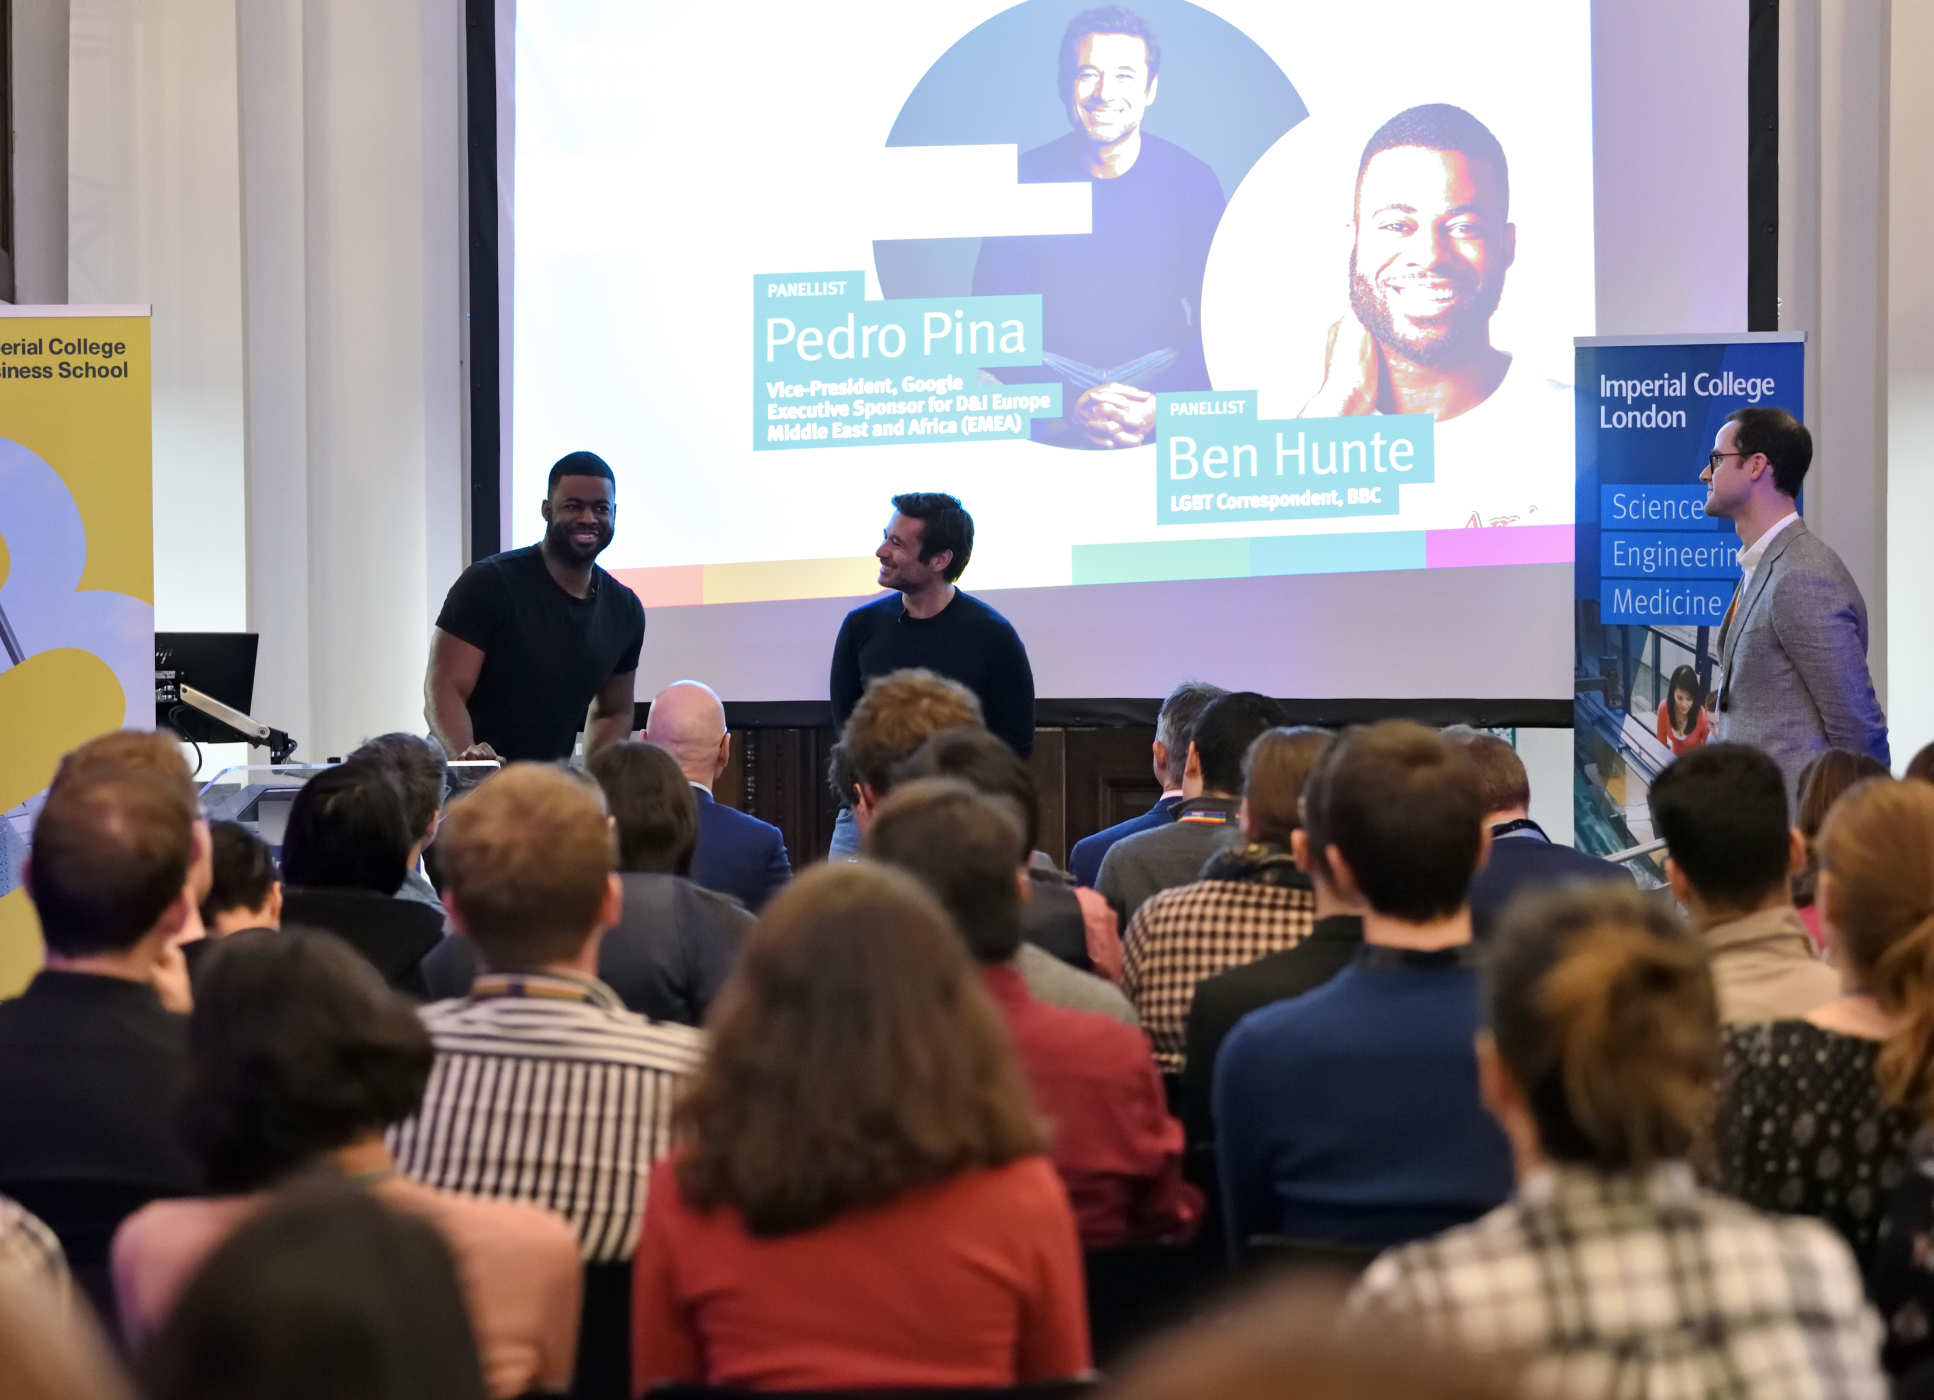 Guest Speakers Ben Hunte and Pedro Pina talking in front of an audience